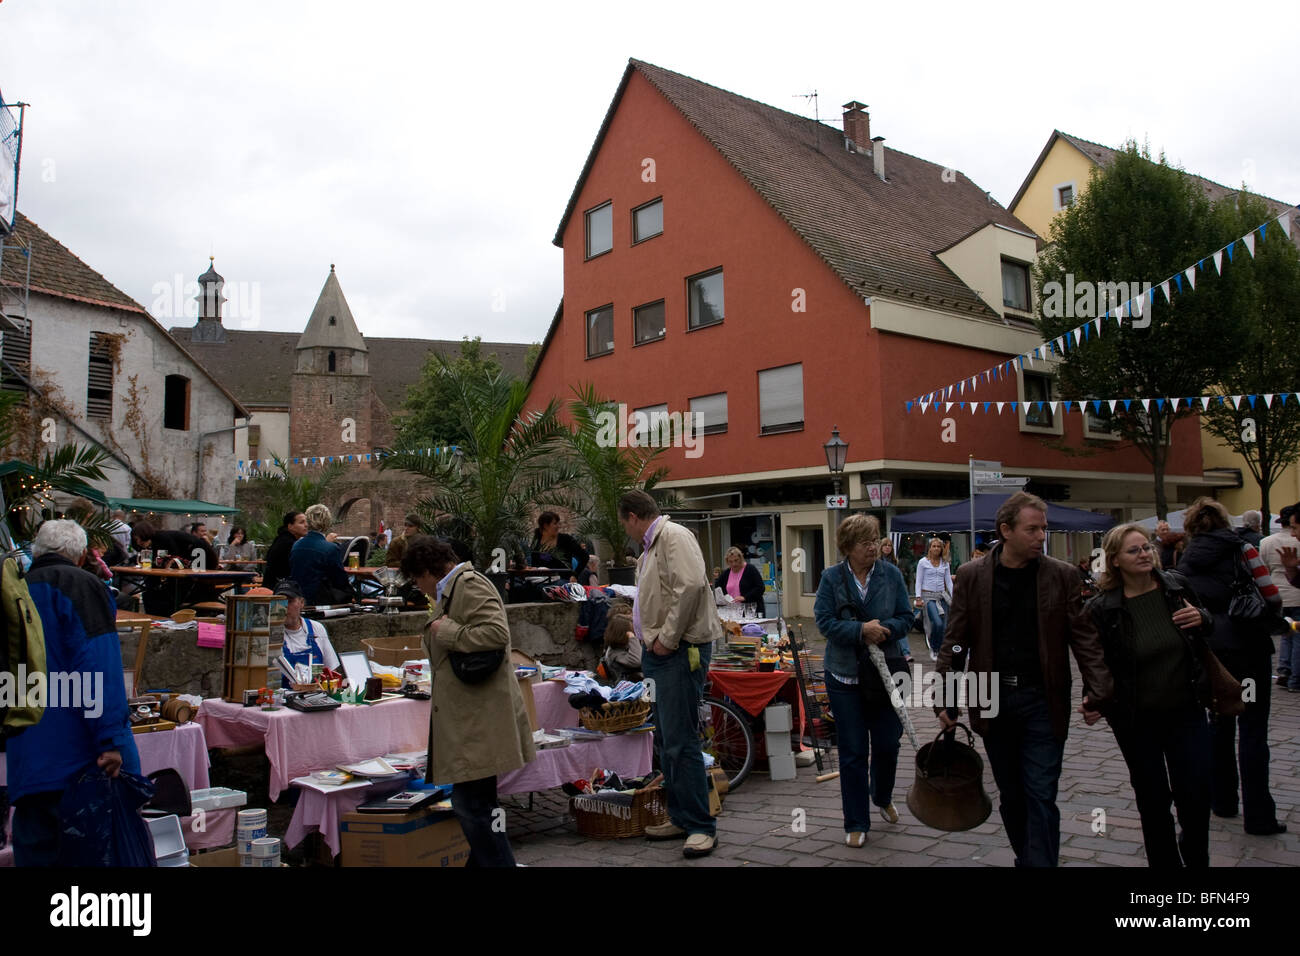 Punters peruse items for sale at a flea market in Ladenburg, Germany - Stock Image